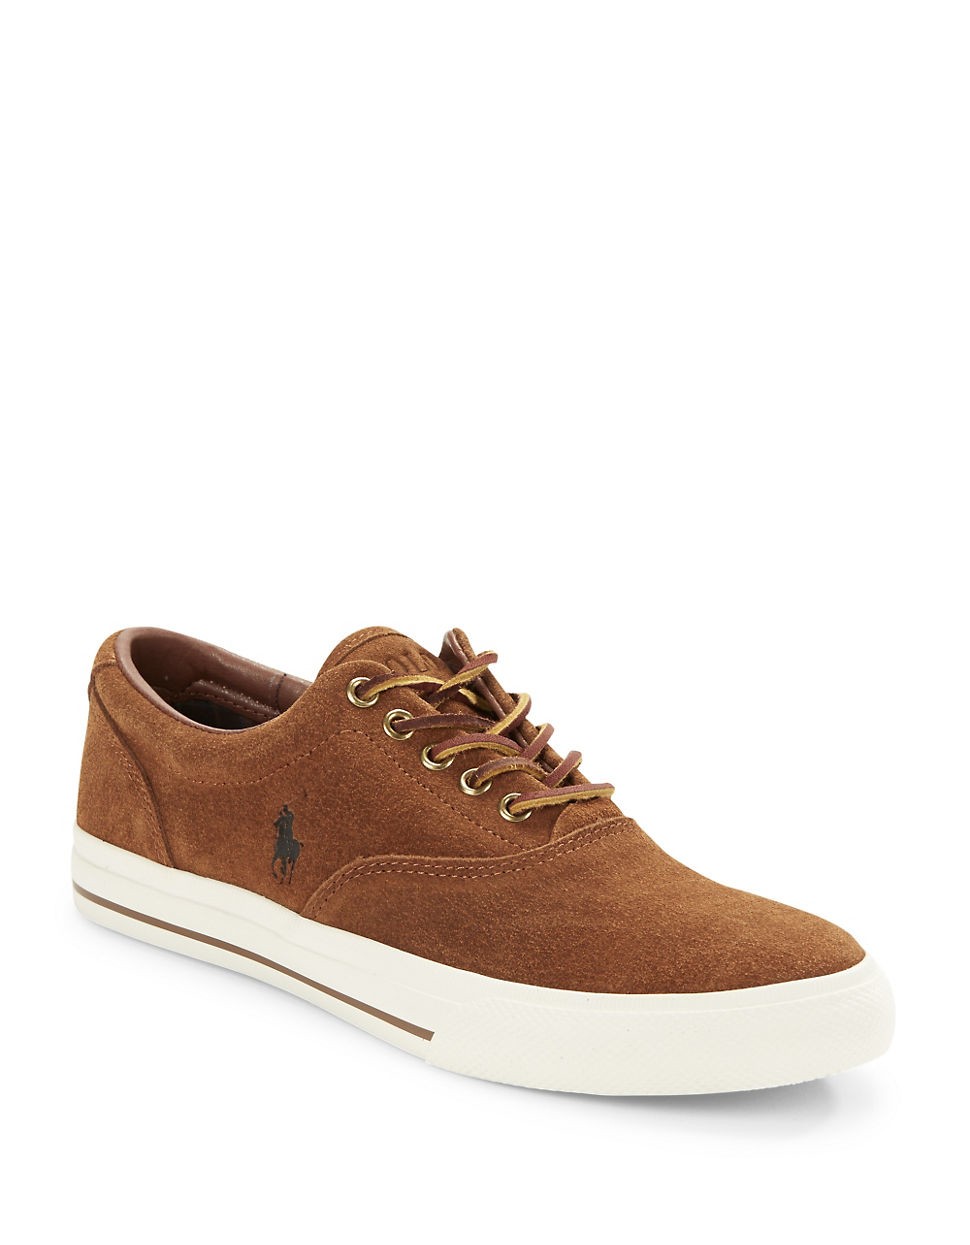 polo ralph vaughn suede lace up sneakers in brown